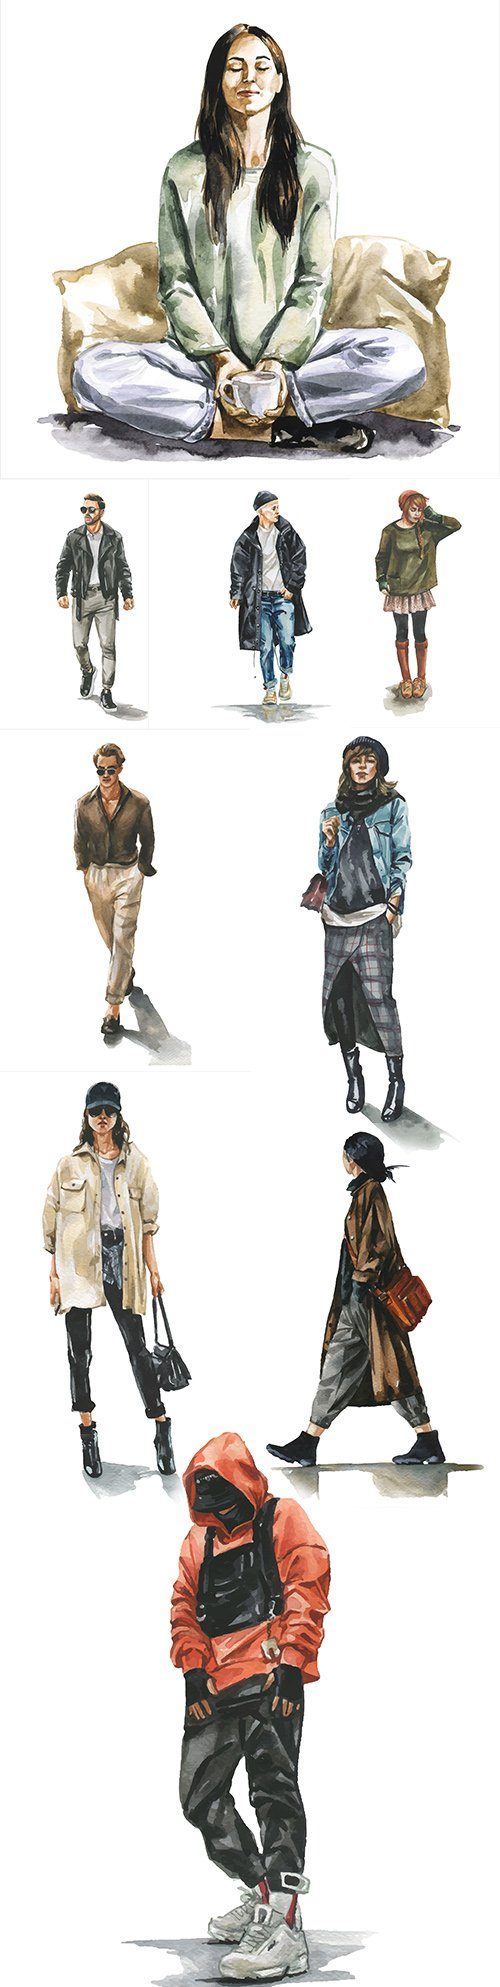 People in different clothes and poses watercolor illustrations